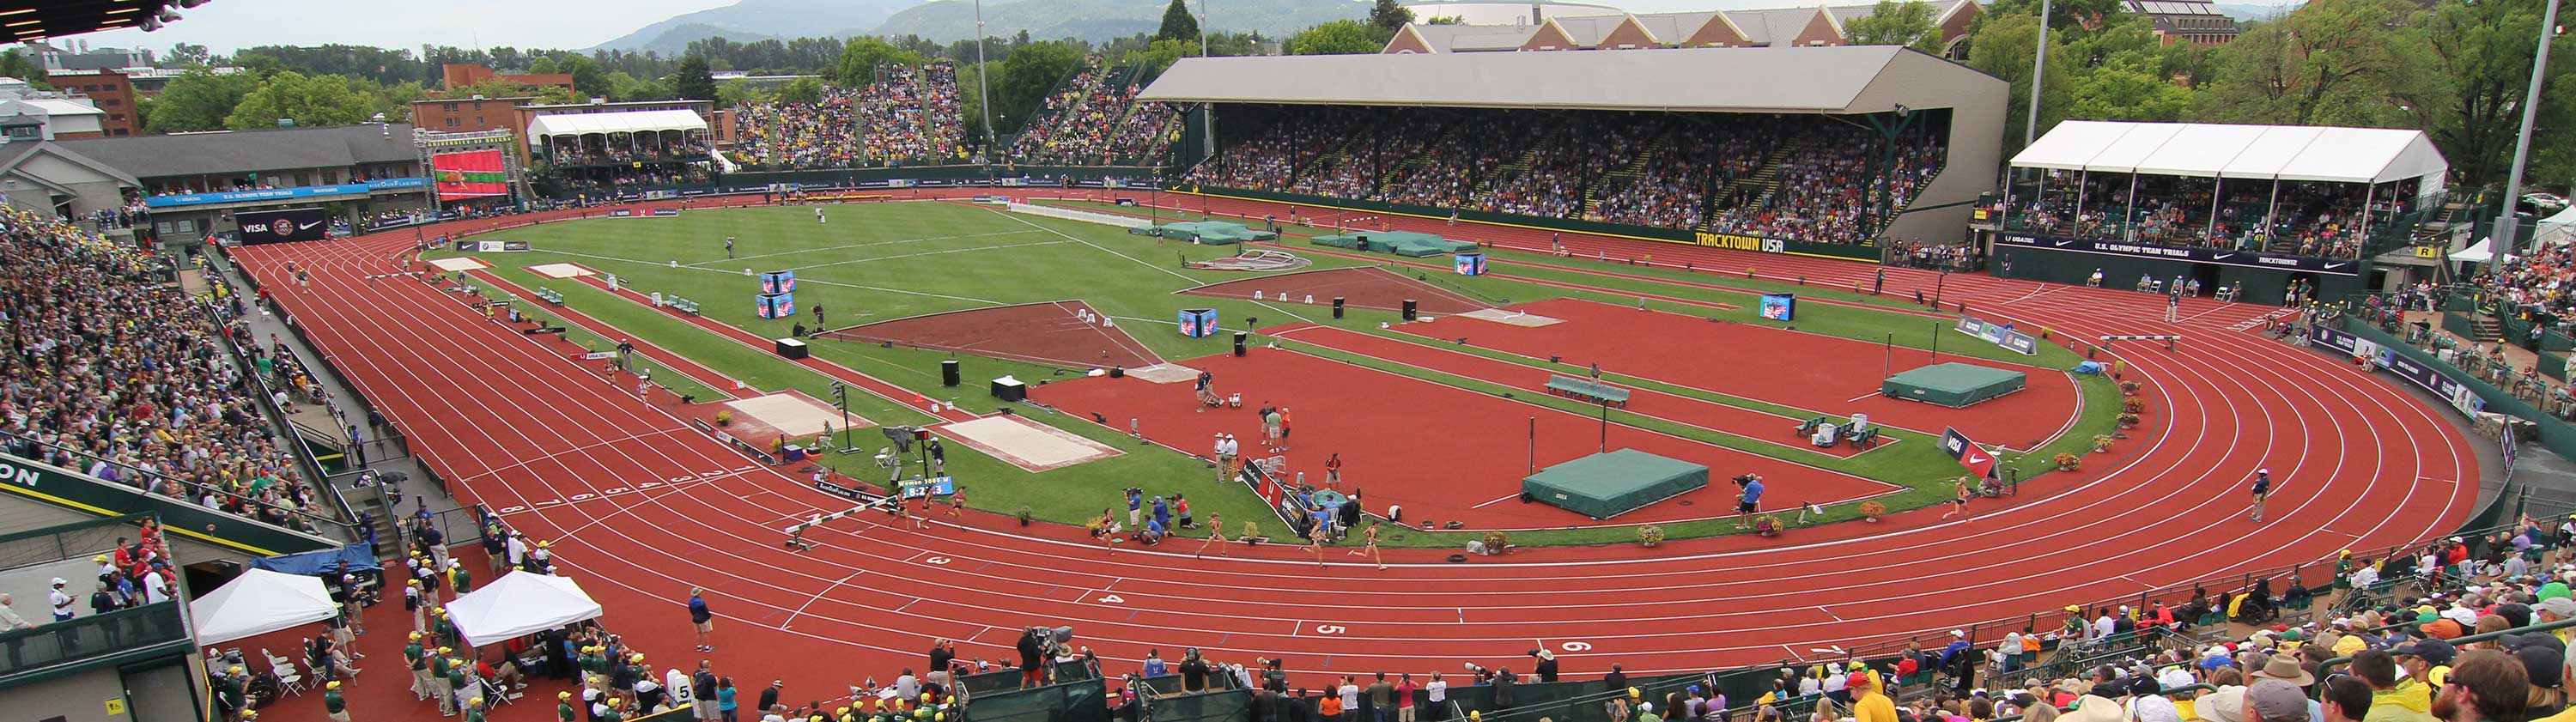 Panorama of Hayward Field during the 2016 US Olympic Trials